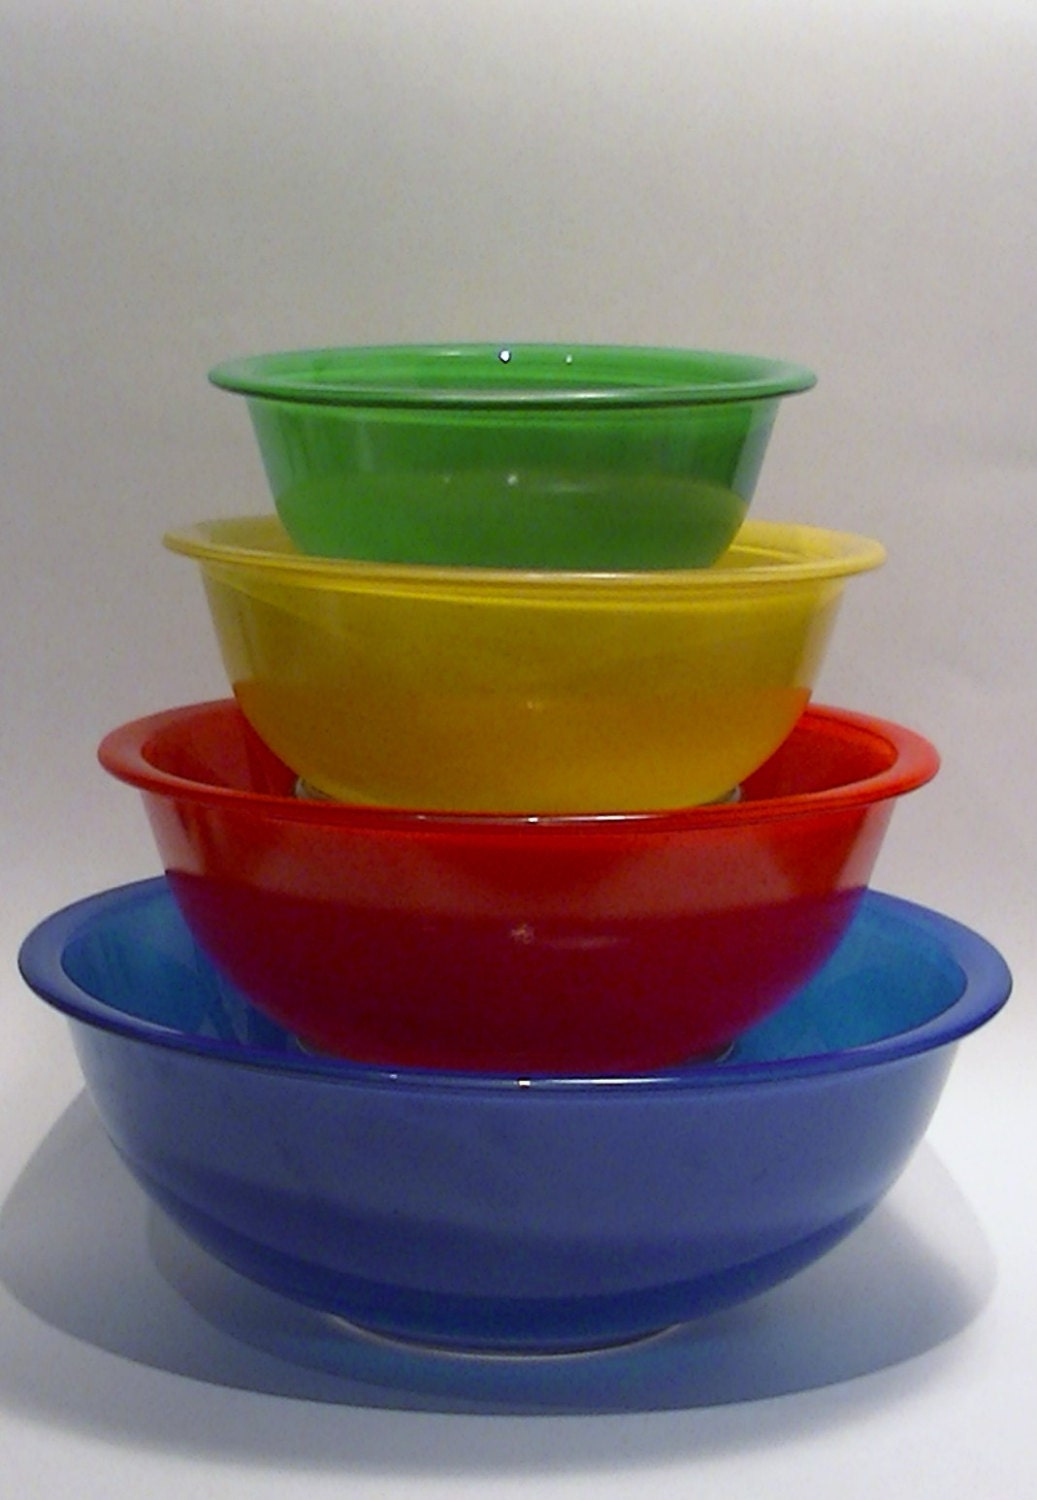 from Vincenzo dating pyrex primary bowls